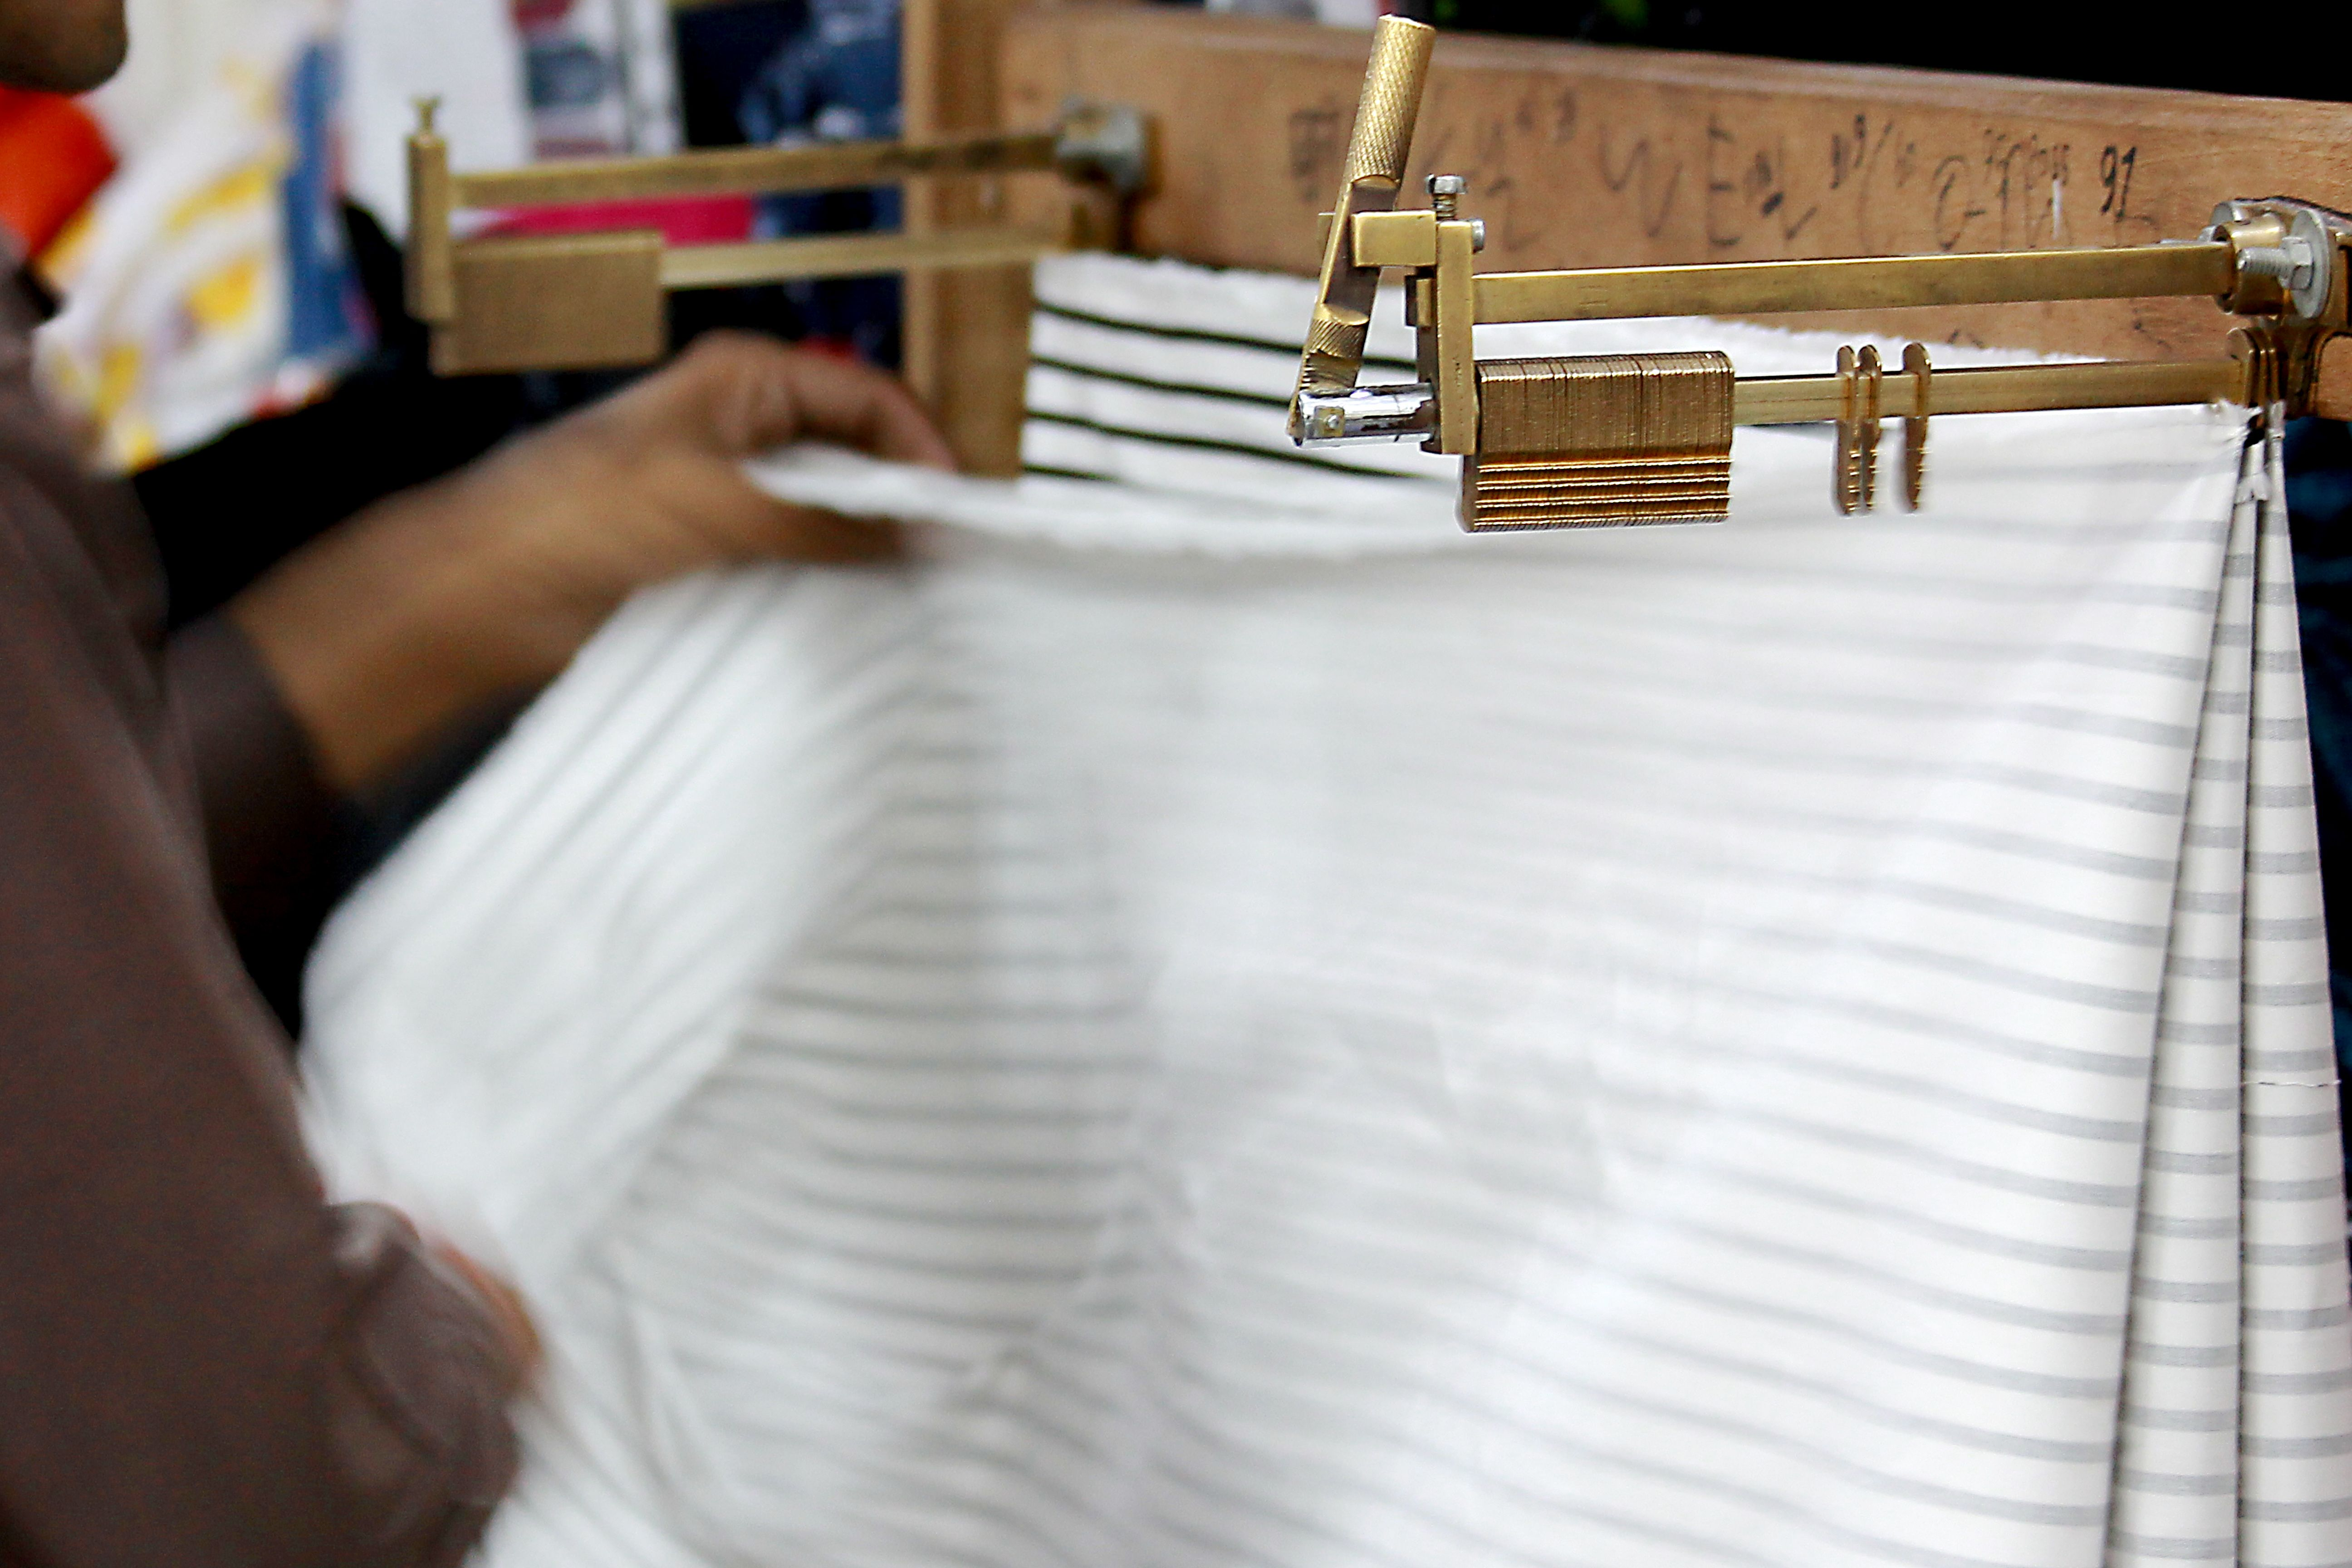 HOW WE DESIGN (PART 3) Step 1. The first step in Production is the issuing of fabric from the fabric store which requires a 'Requisition Slip' with the details, quantity and requirement of the fabric.